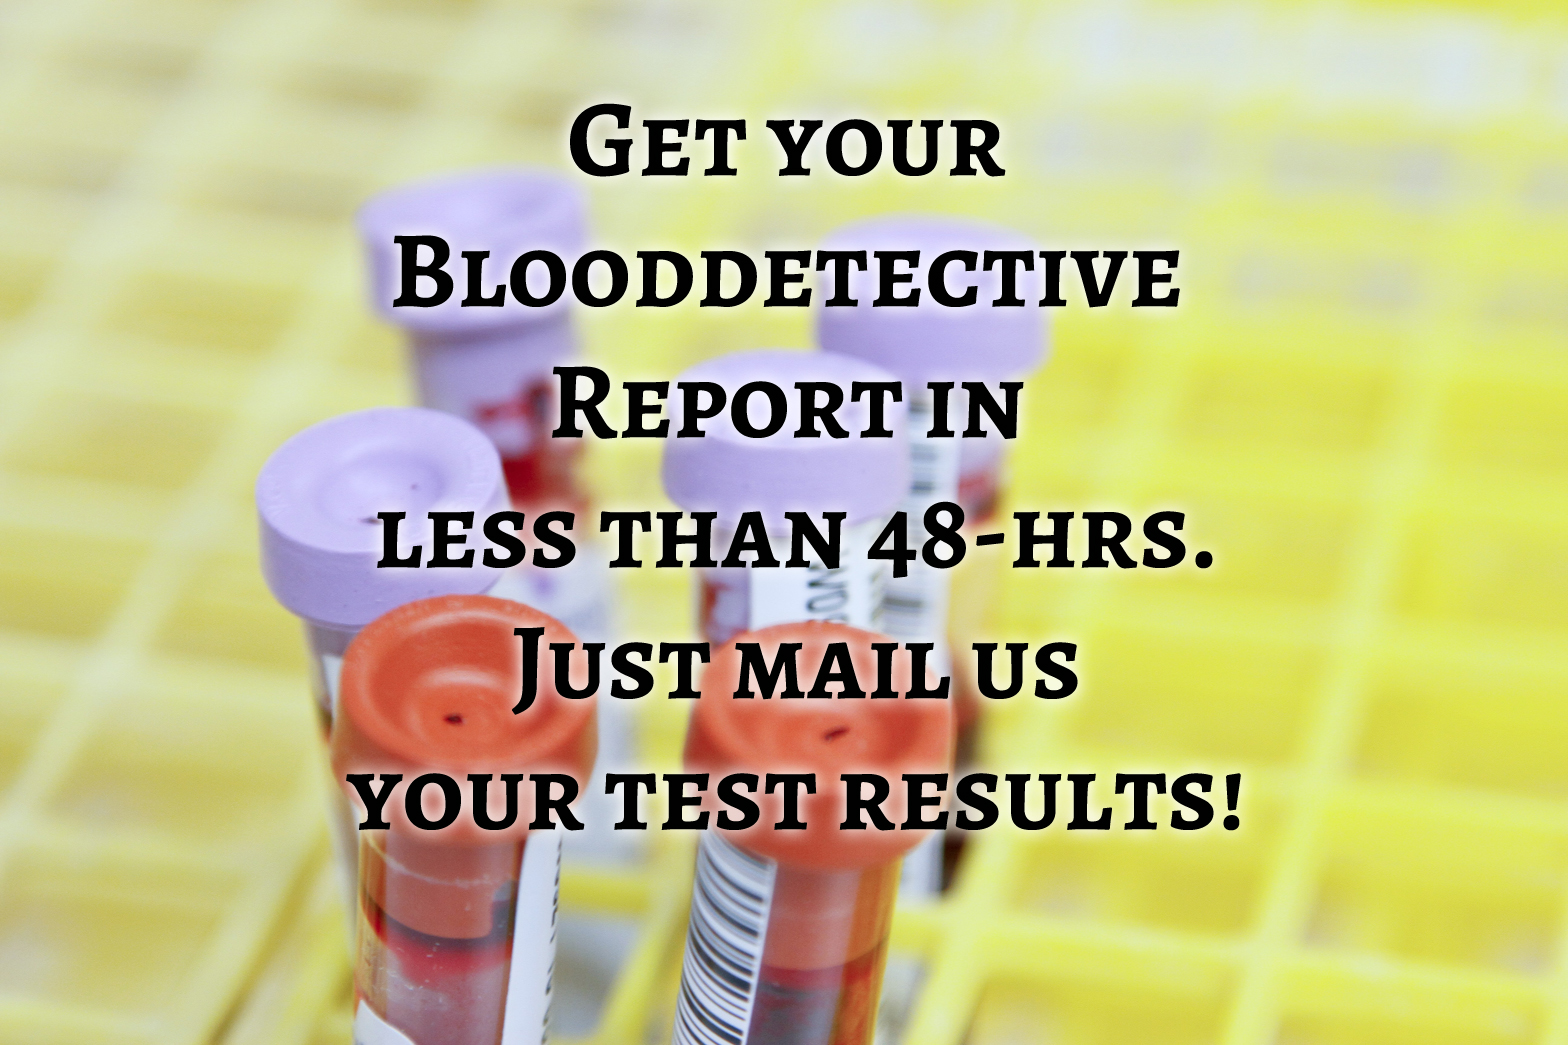 Get your report in less than 48 hours